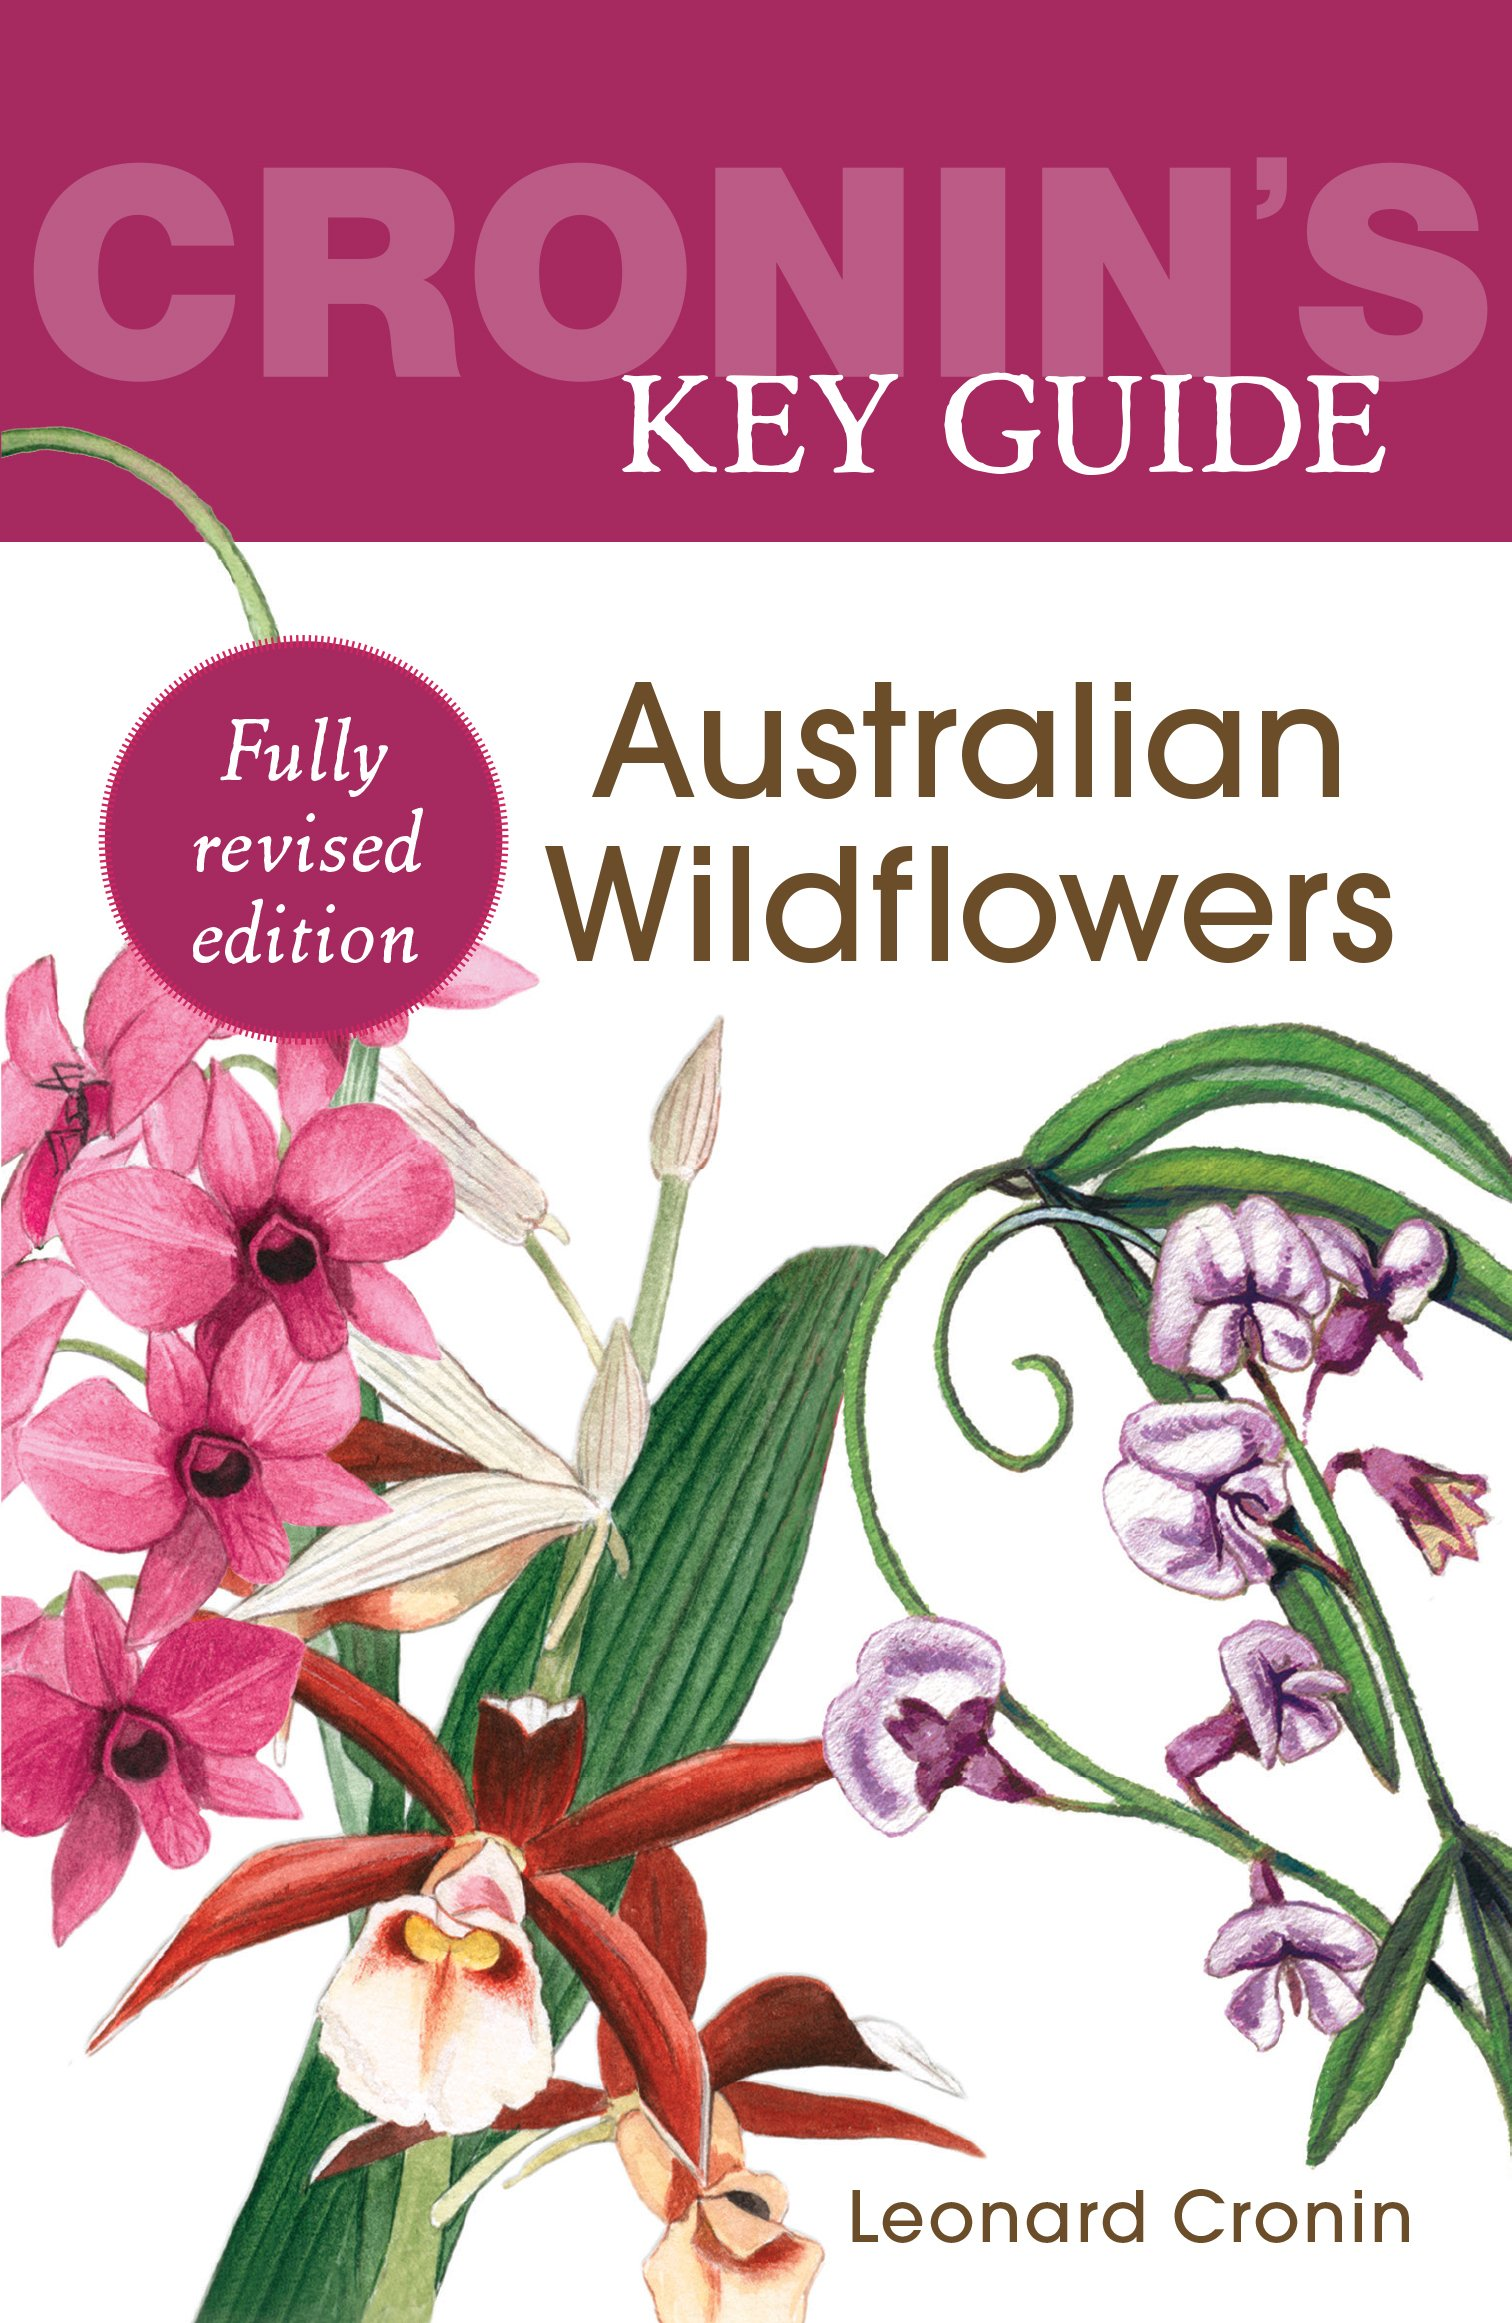 Cronin's Key Guide to Australian Wildflowers (Cronin's Key Guides)